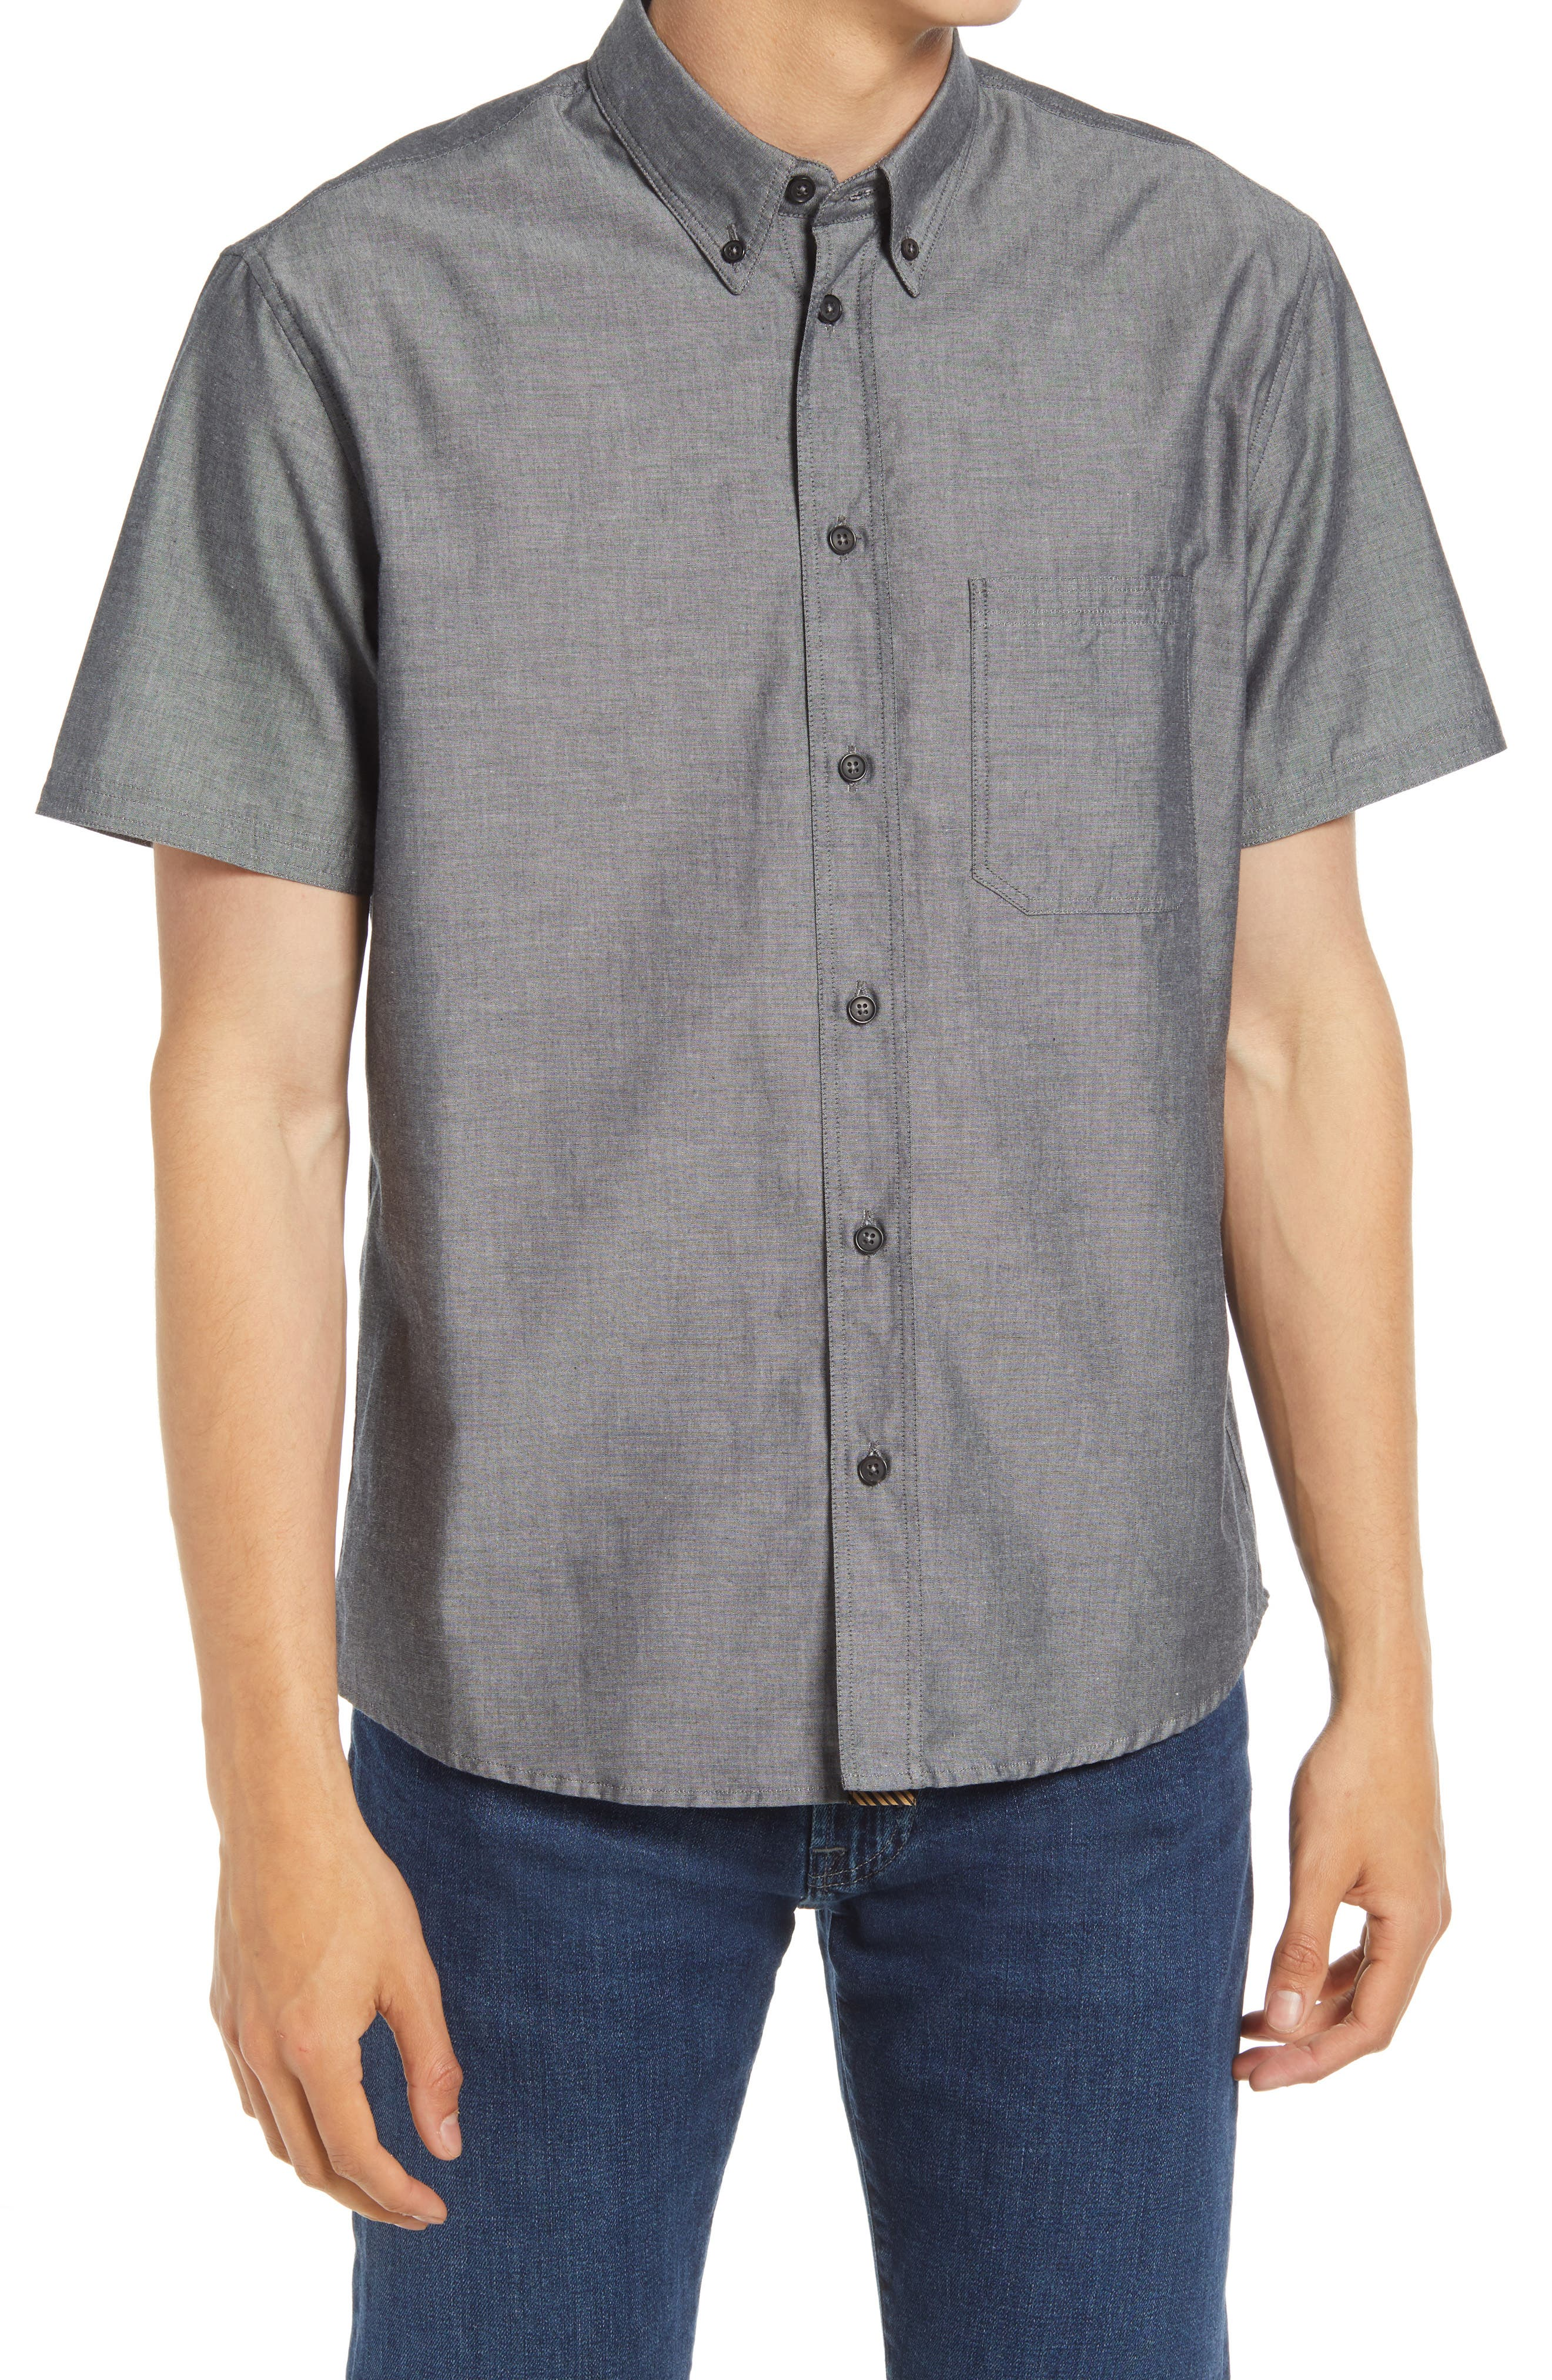 Tuscumbia Standard Fit Short Sleeve Button-Down Shirt